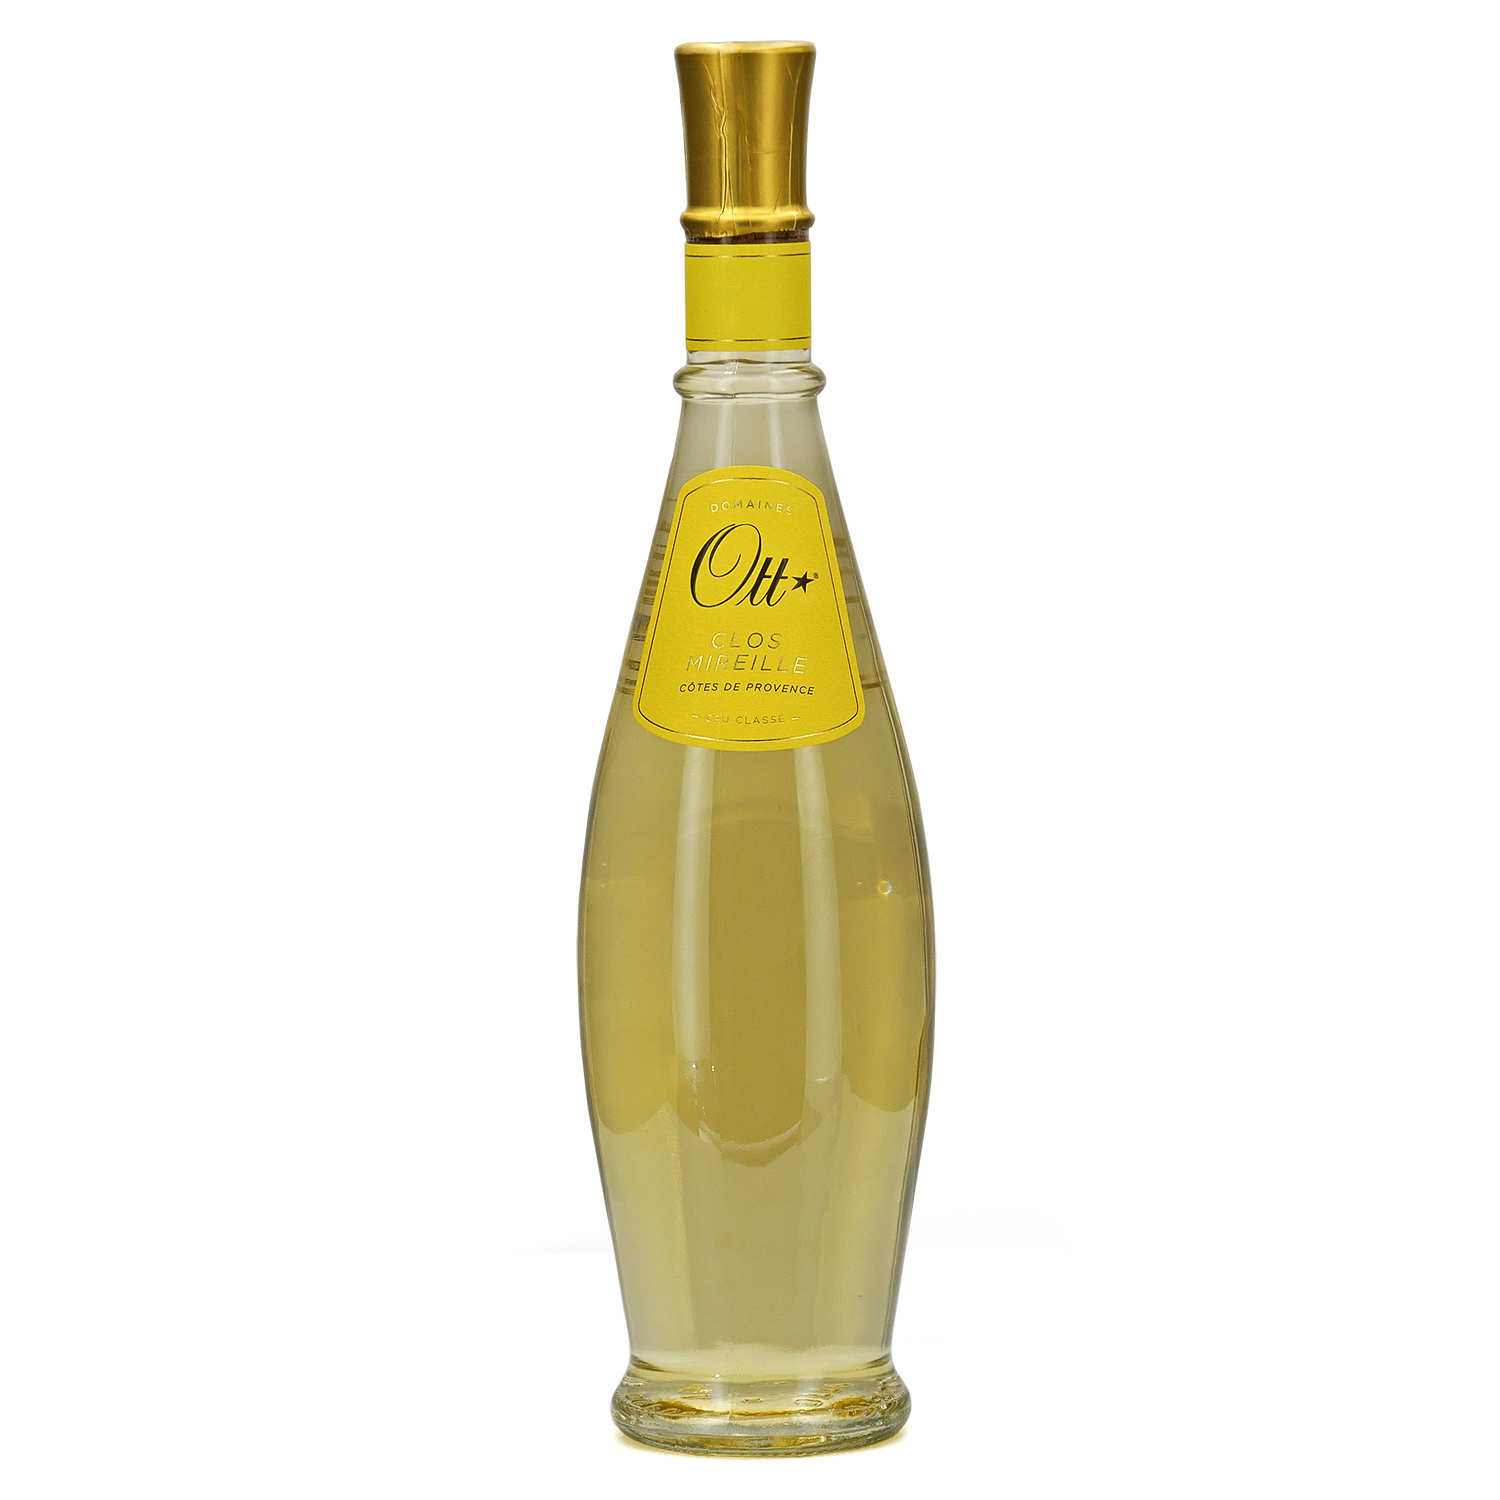 Clos Mireille Blanc de Blancs - White Wine From Provence